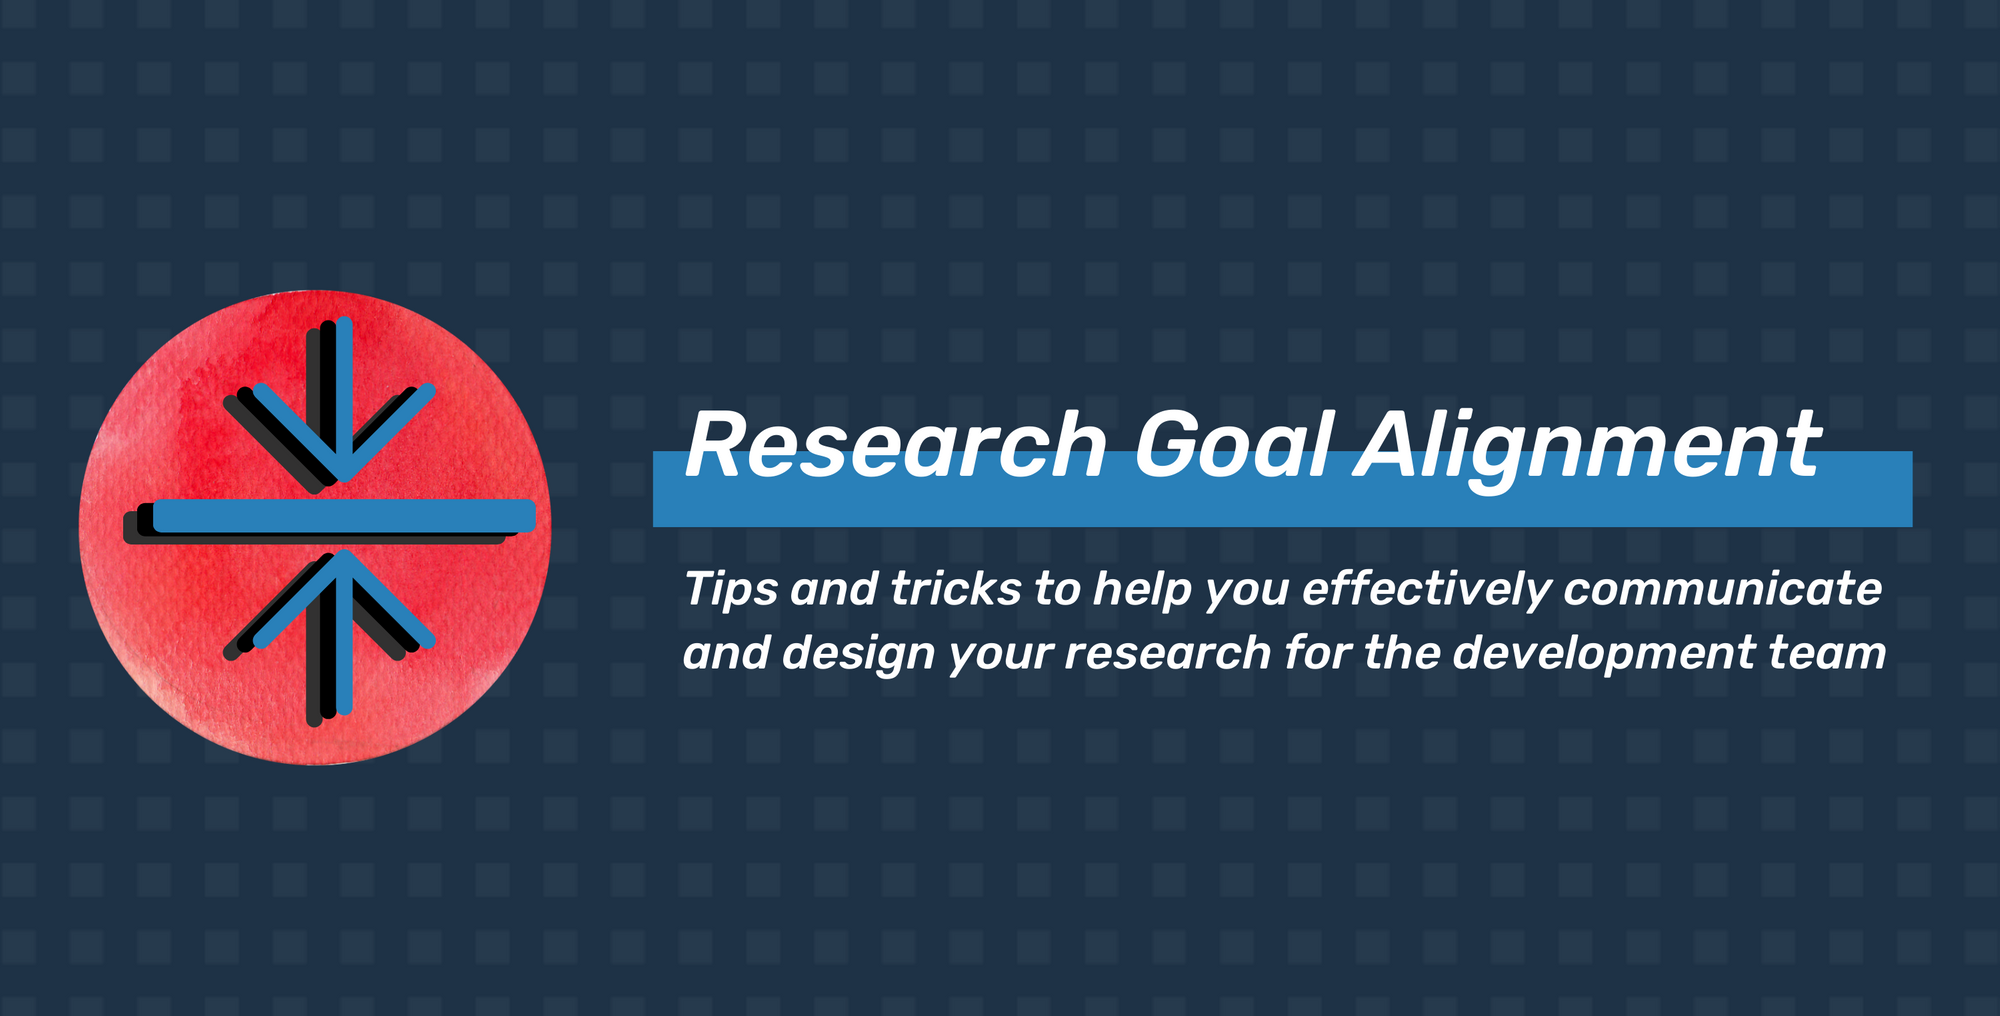 Steps to Research Goal Alignment